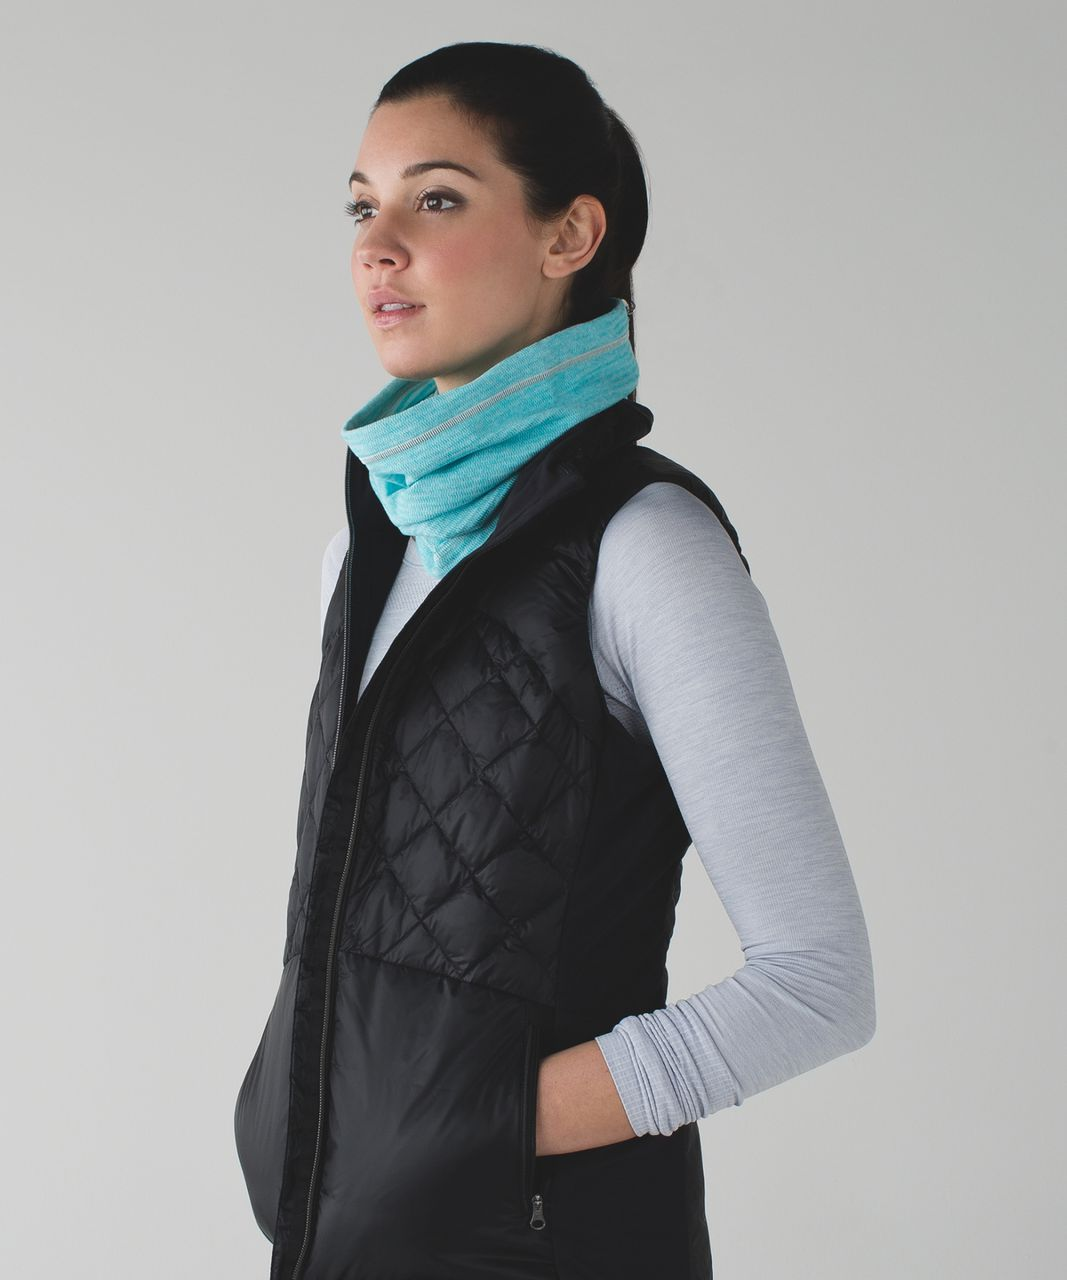 Lululemon Run Fast Neck Warmer - Mini Check Pique Aquamarine Heathered Peacock Blue